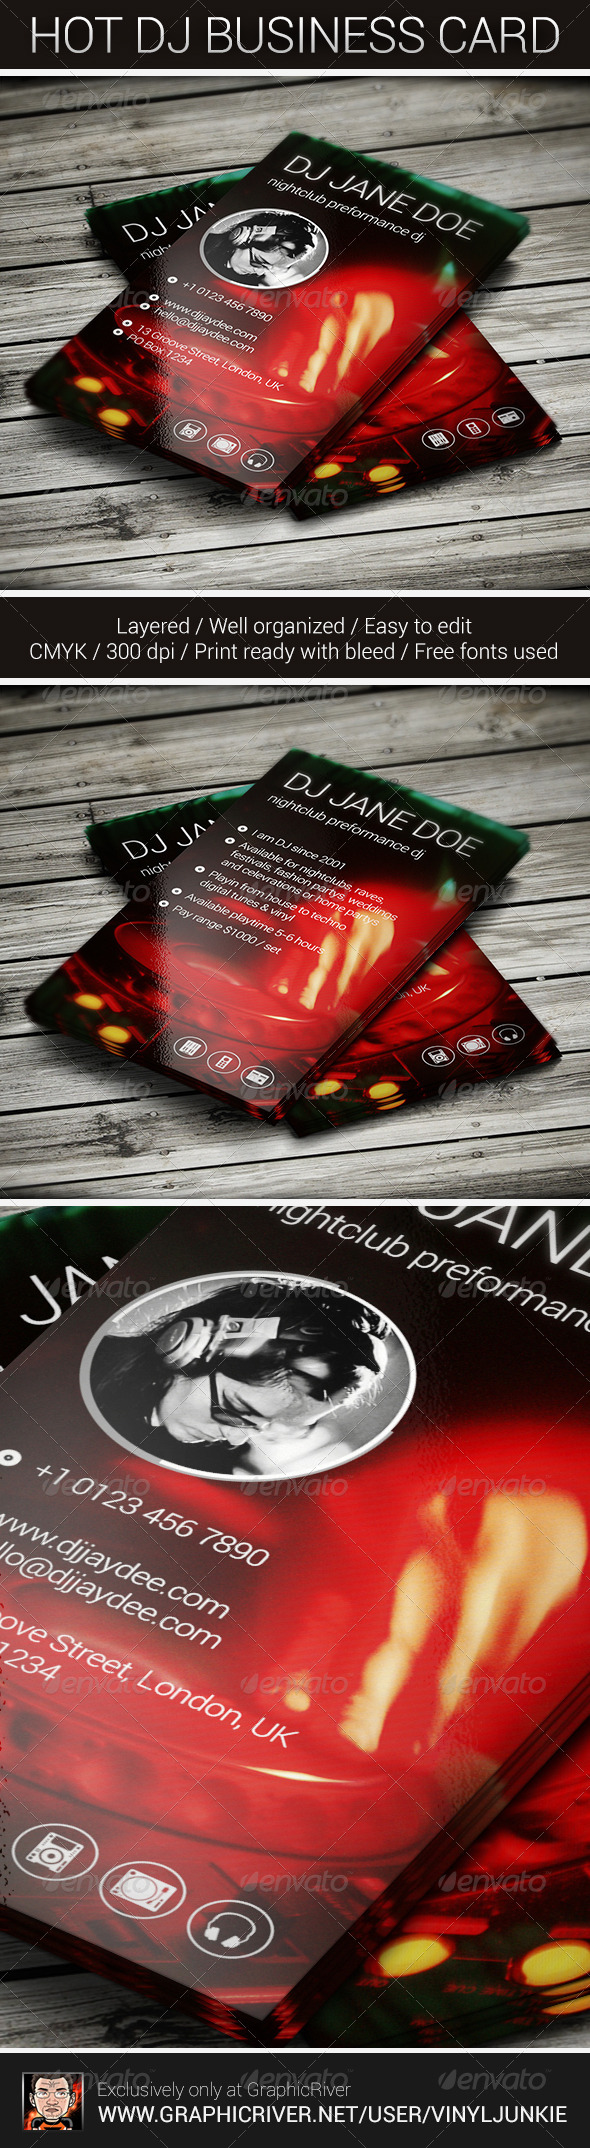 GraphicRiver Hot DJ Business Card 5936286